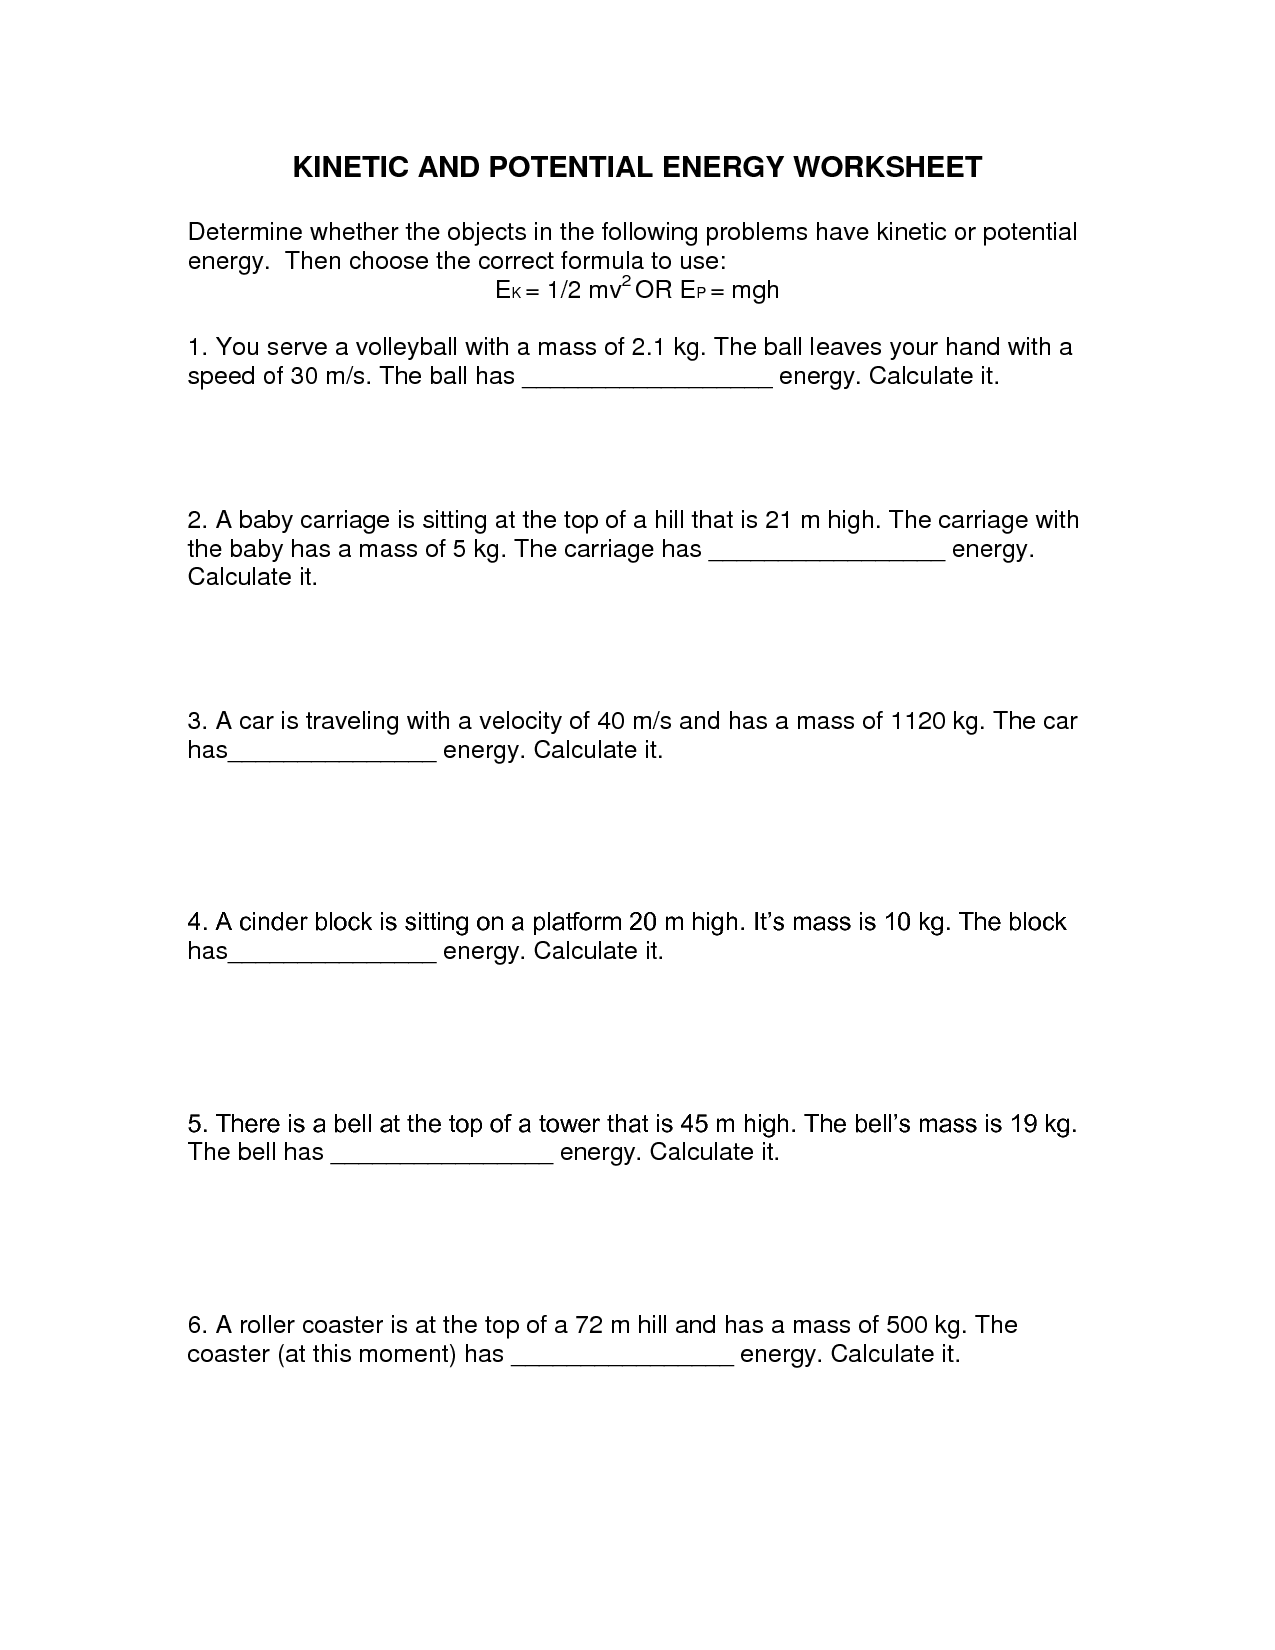 14 Best Images of Worksheets Potential And Kinetic Energy  Potential Energy Worksheets